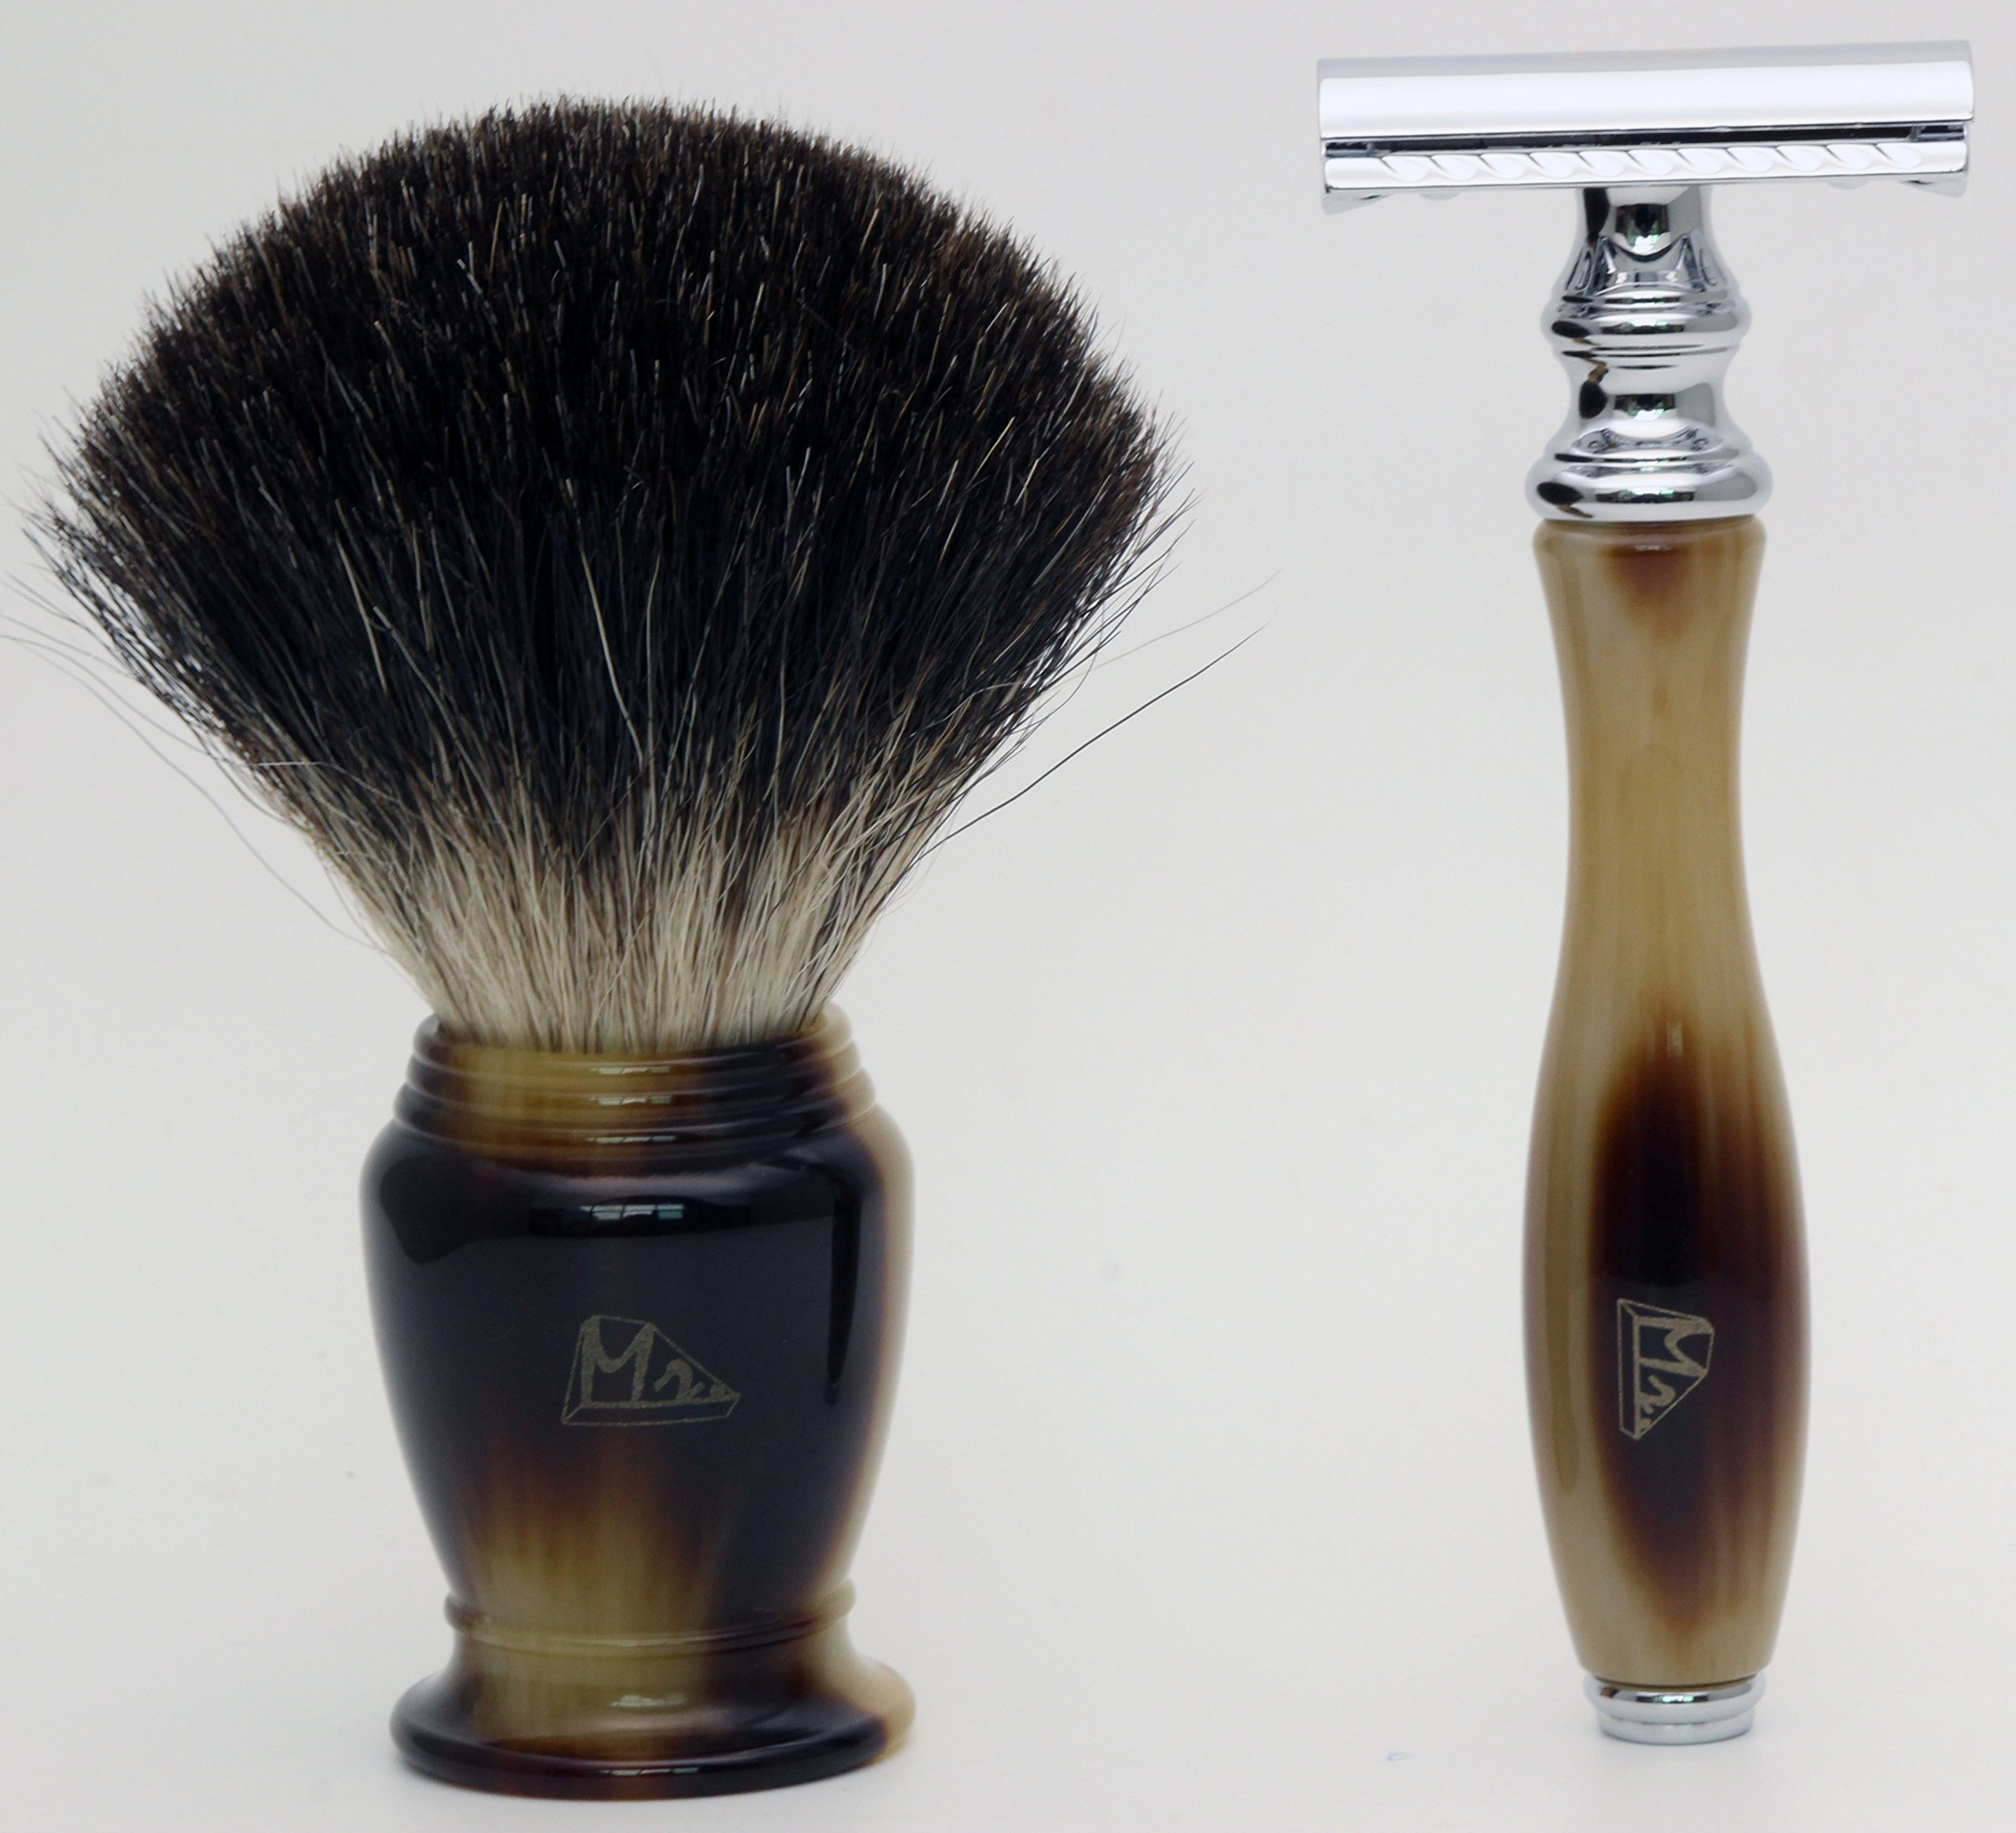 Mr 4 IN 1 Shaving Set with Safety Razor,Bowl,Stand,Hand Crafted 100% Pure Badger Shaving brush.Great Christmas Gift Idea for Your man, father,husband,boyfriend,brother,boss (faux horn)